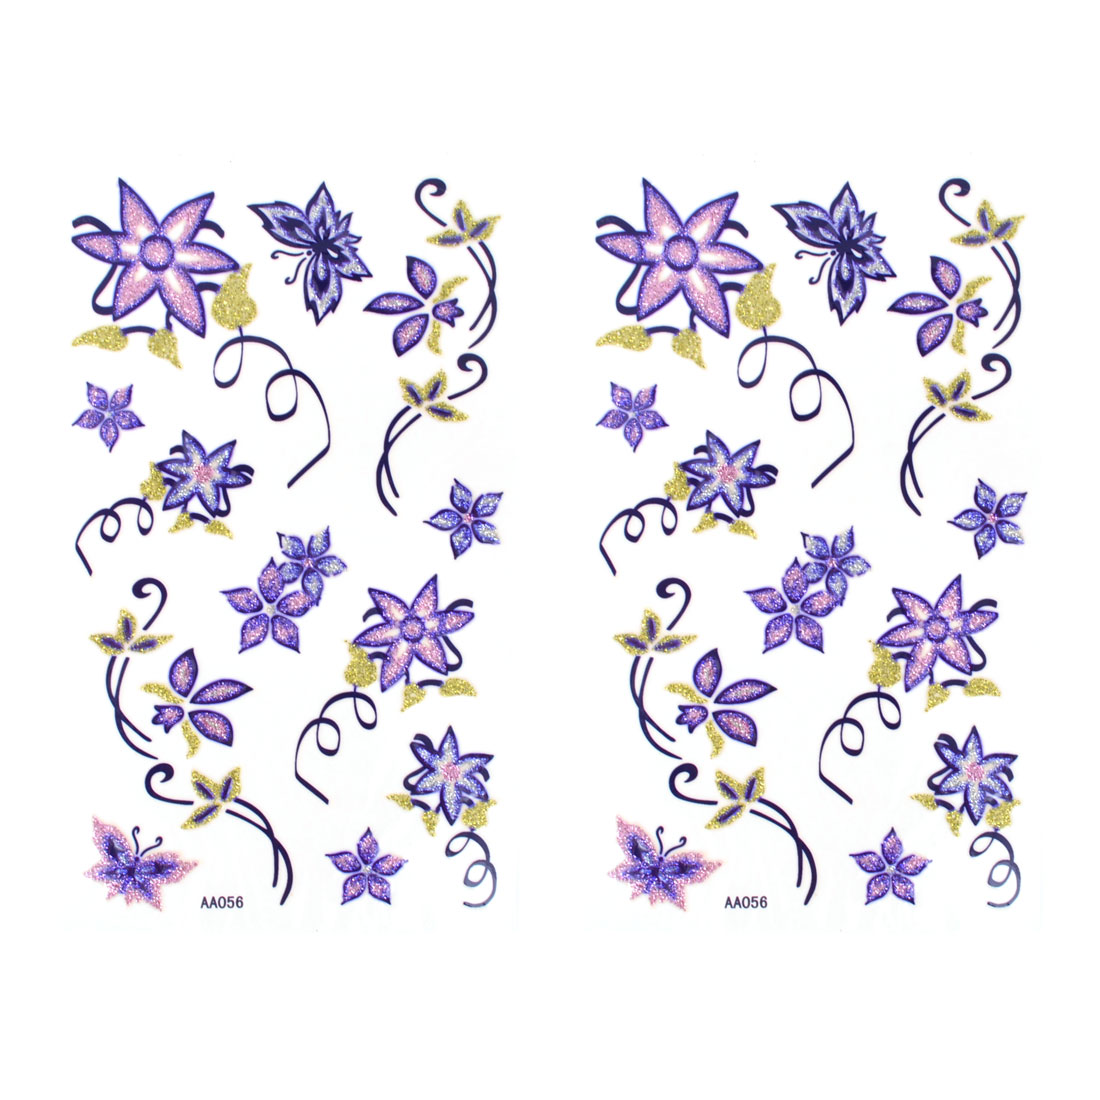 Skin Decorative Purple Butterfly Floral Pattern Transferable Tattoos Seal Beauty Decal 2pcs